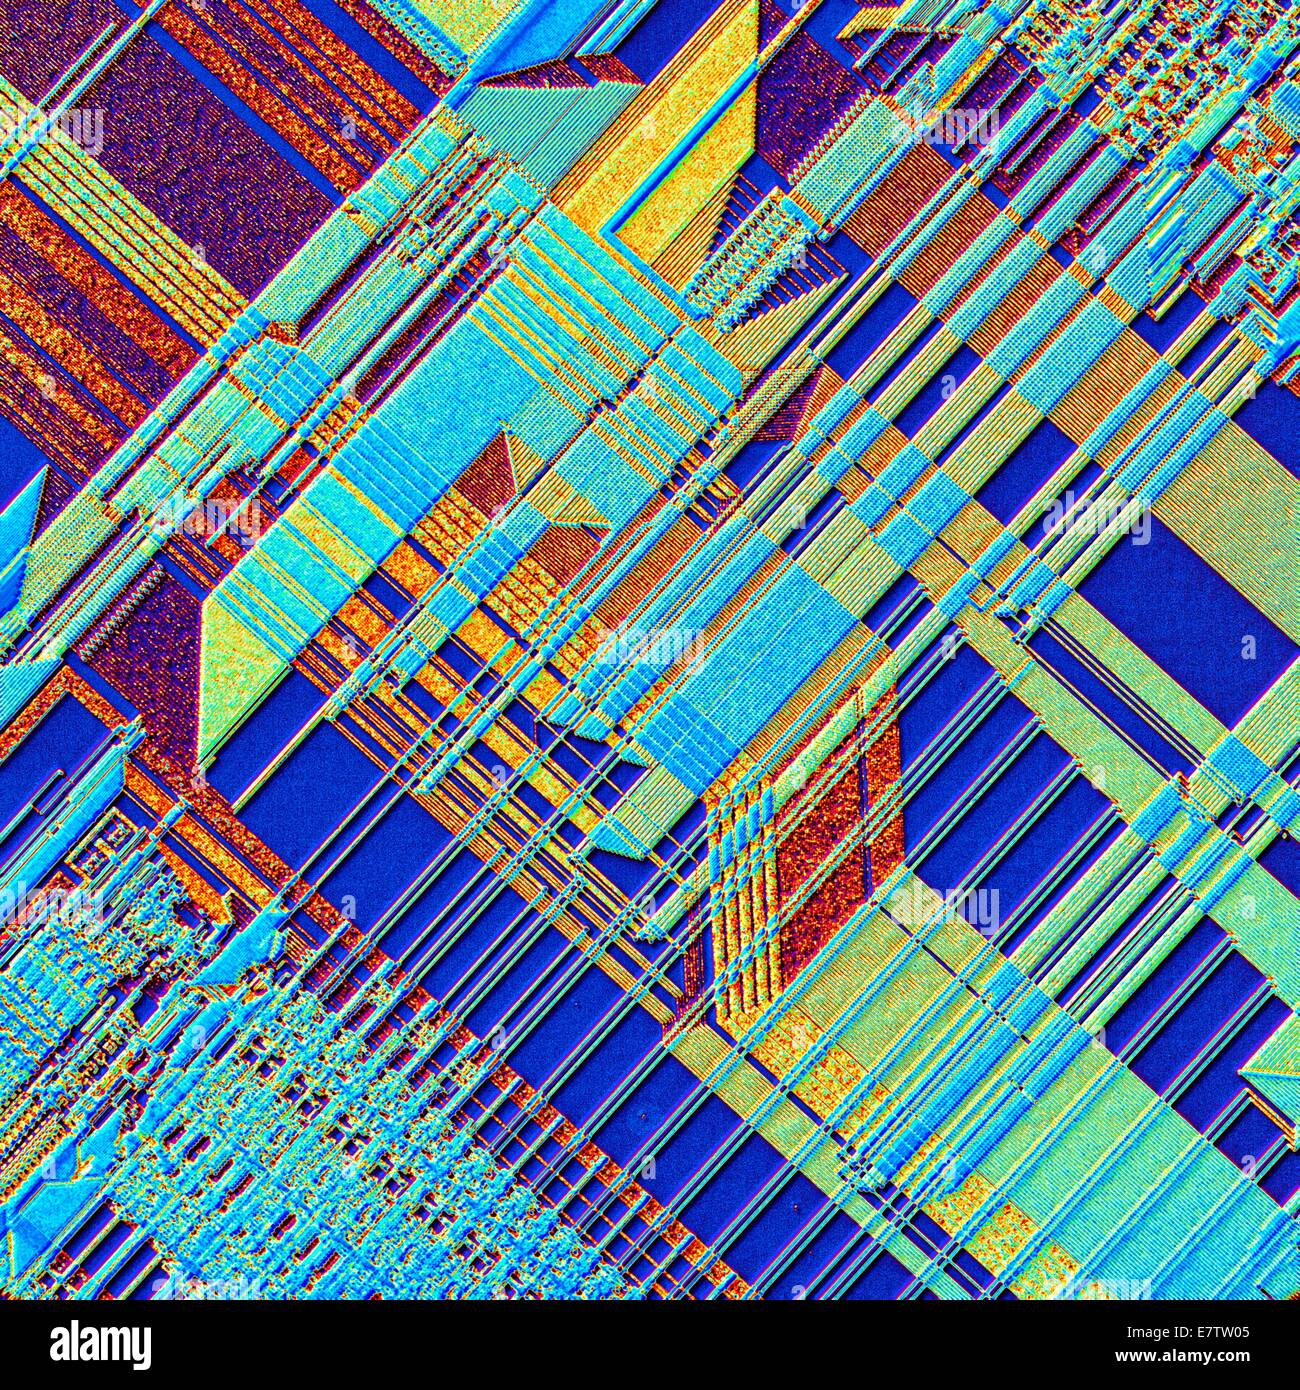 Computer chip. Coloured light micrograph of the surface of an integrated chip from a computer. This integrated circuit - Stock Image